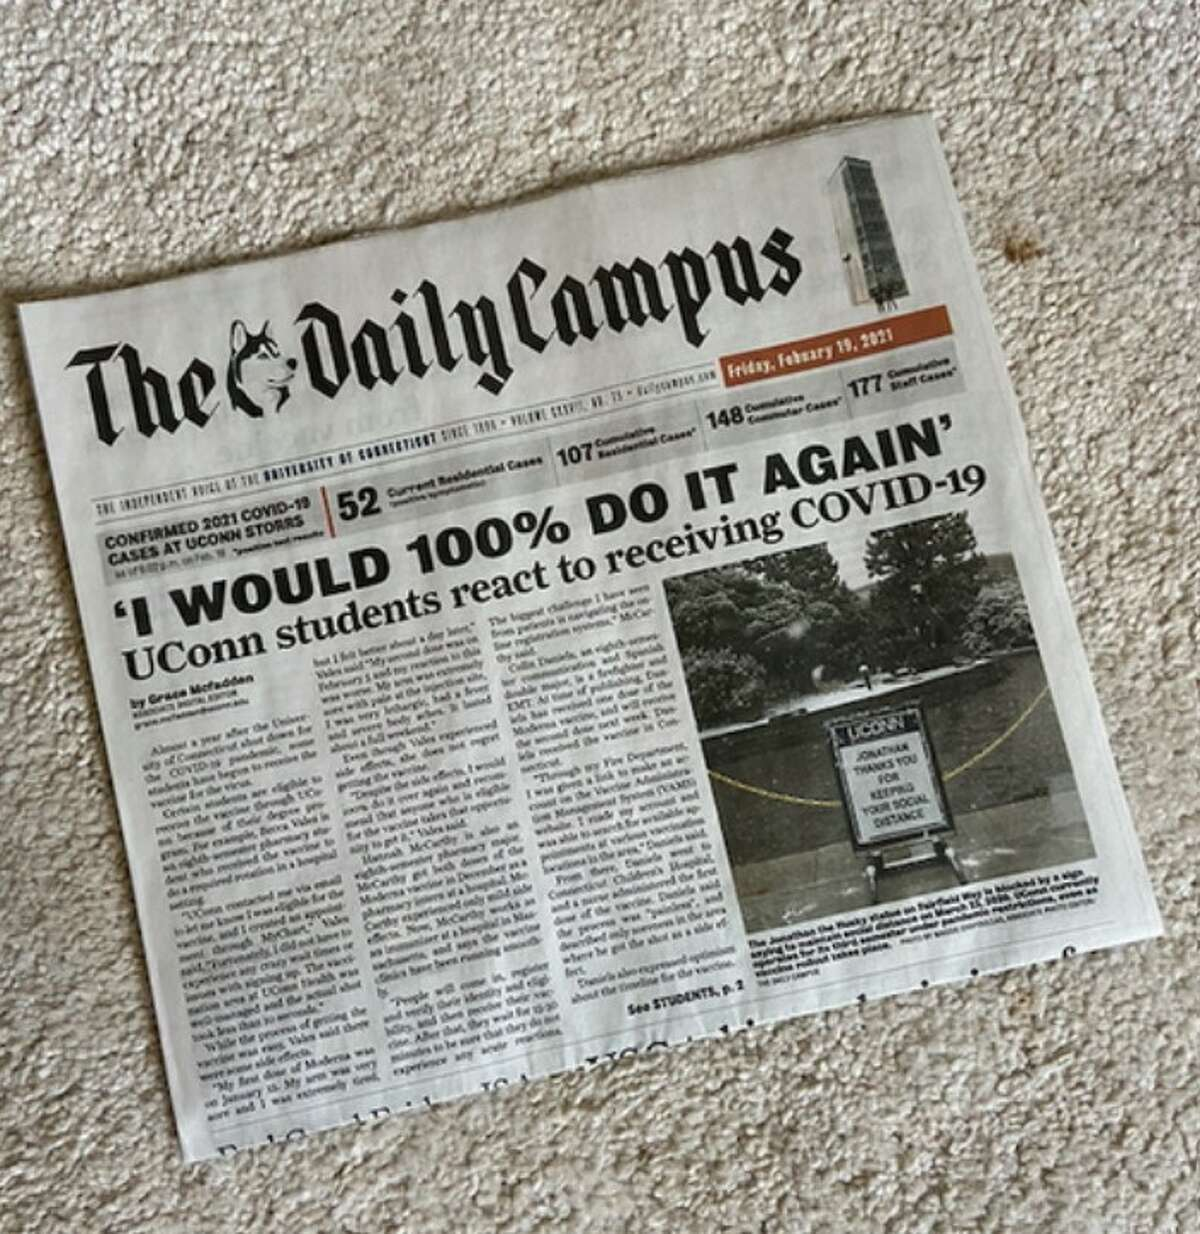 The front page of the Daily Campus, UConn's student newspaper, on Friday, February 19, 2021.